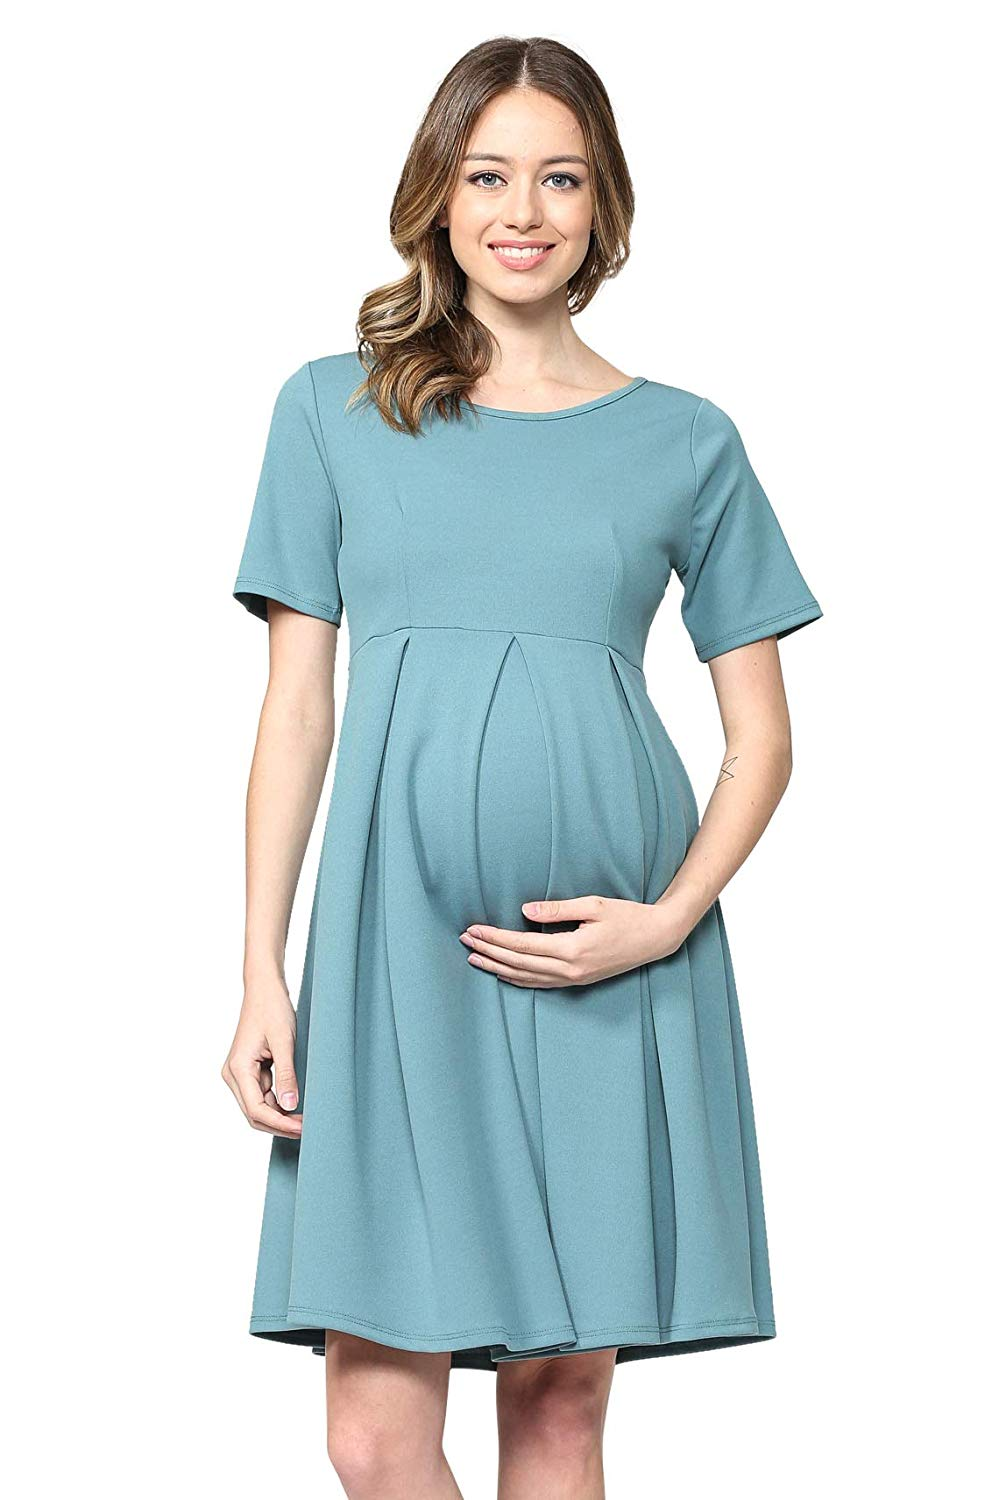 Turquoise Maternity Midi Dress - Mommylicious